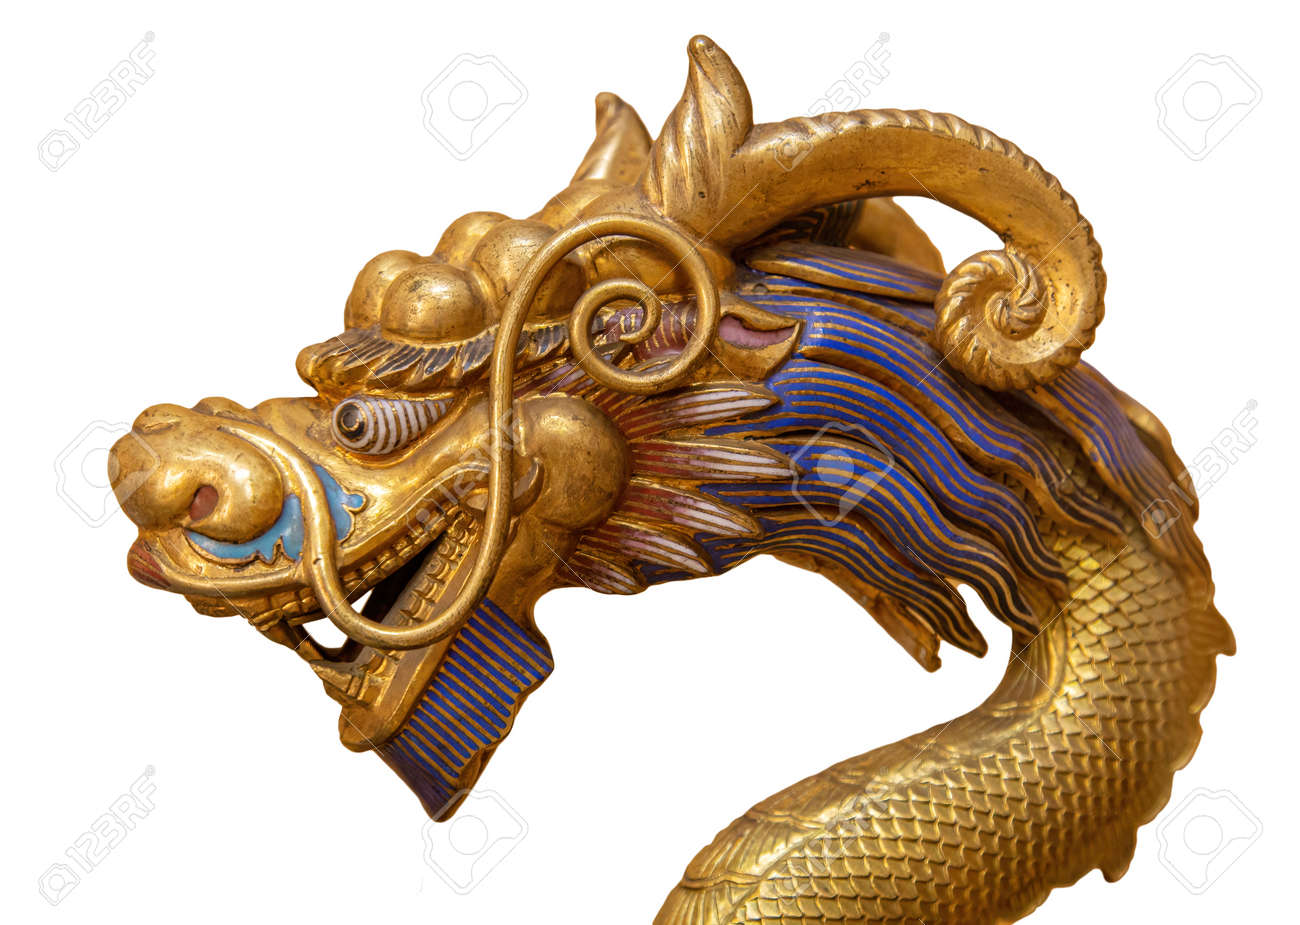 Golden Dragon isolated on white background - 169669157